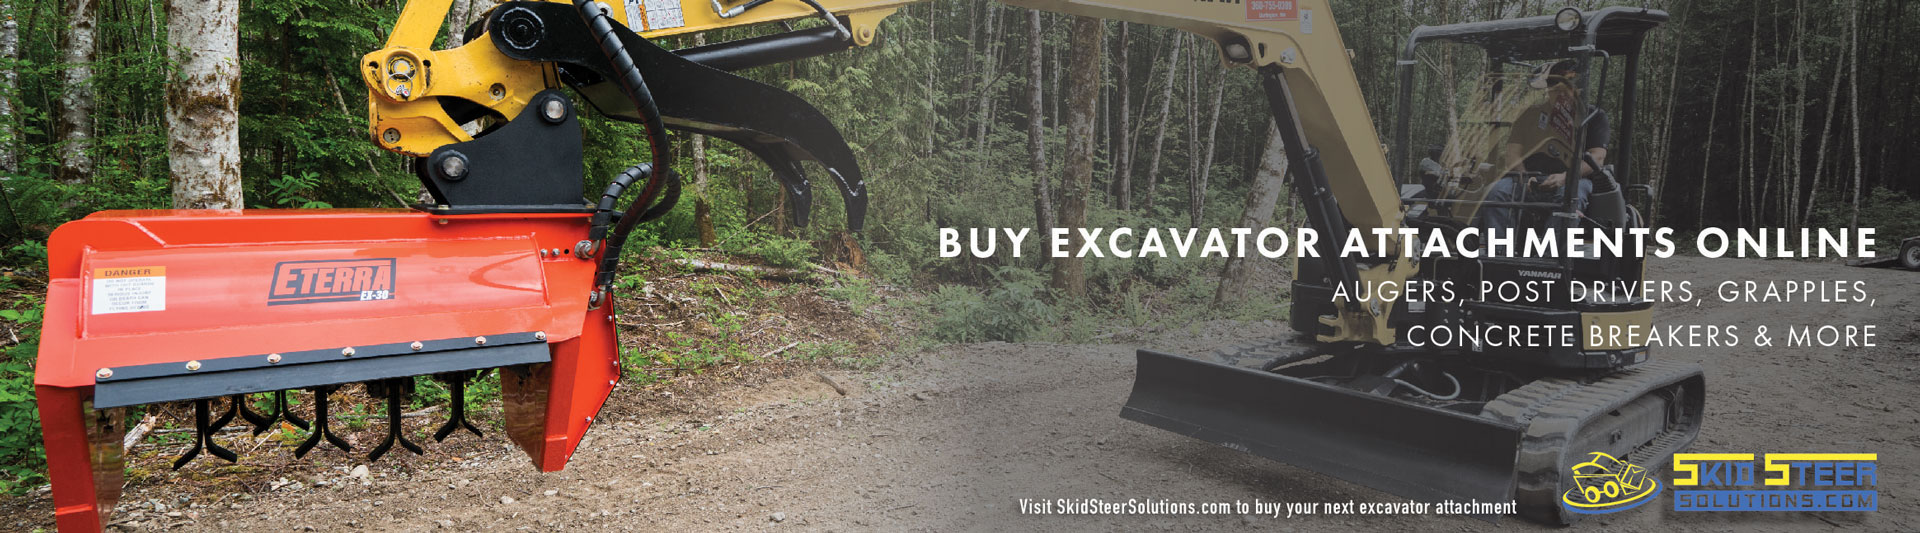 Excavator Attachments for a Wide Range of Jobs | Mini and Compact EX